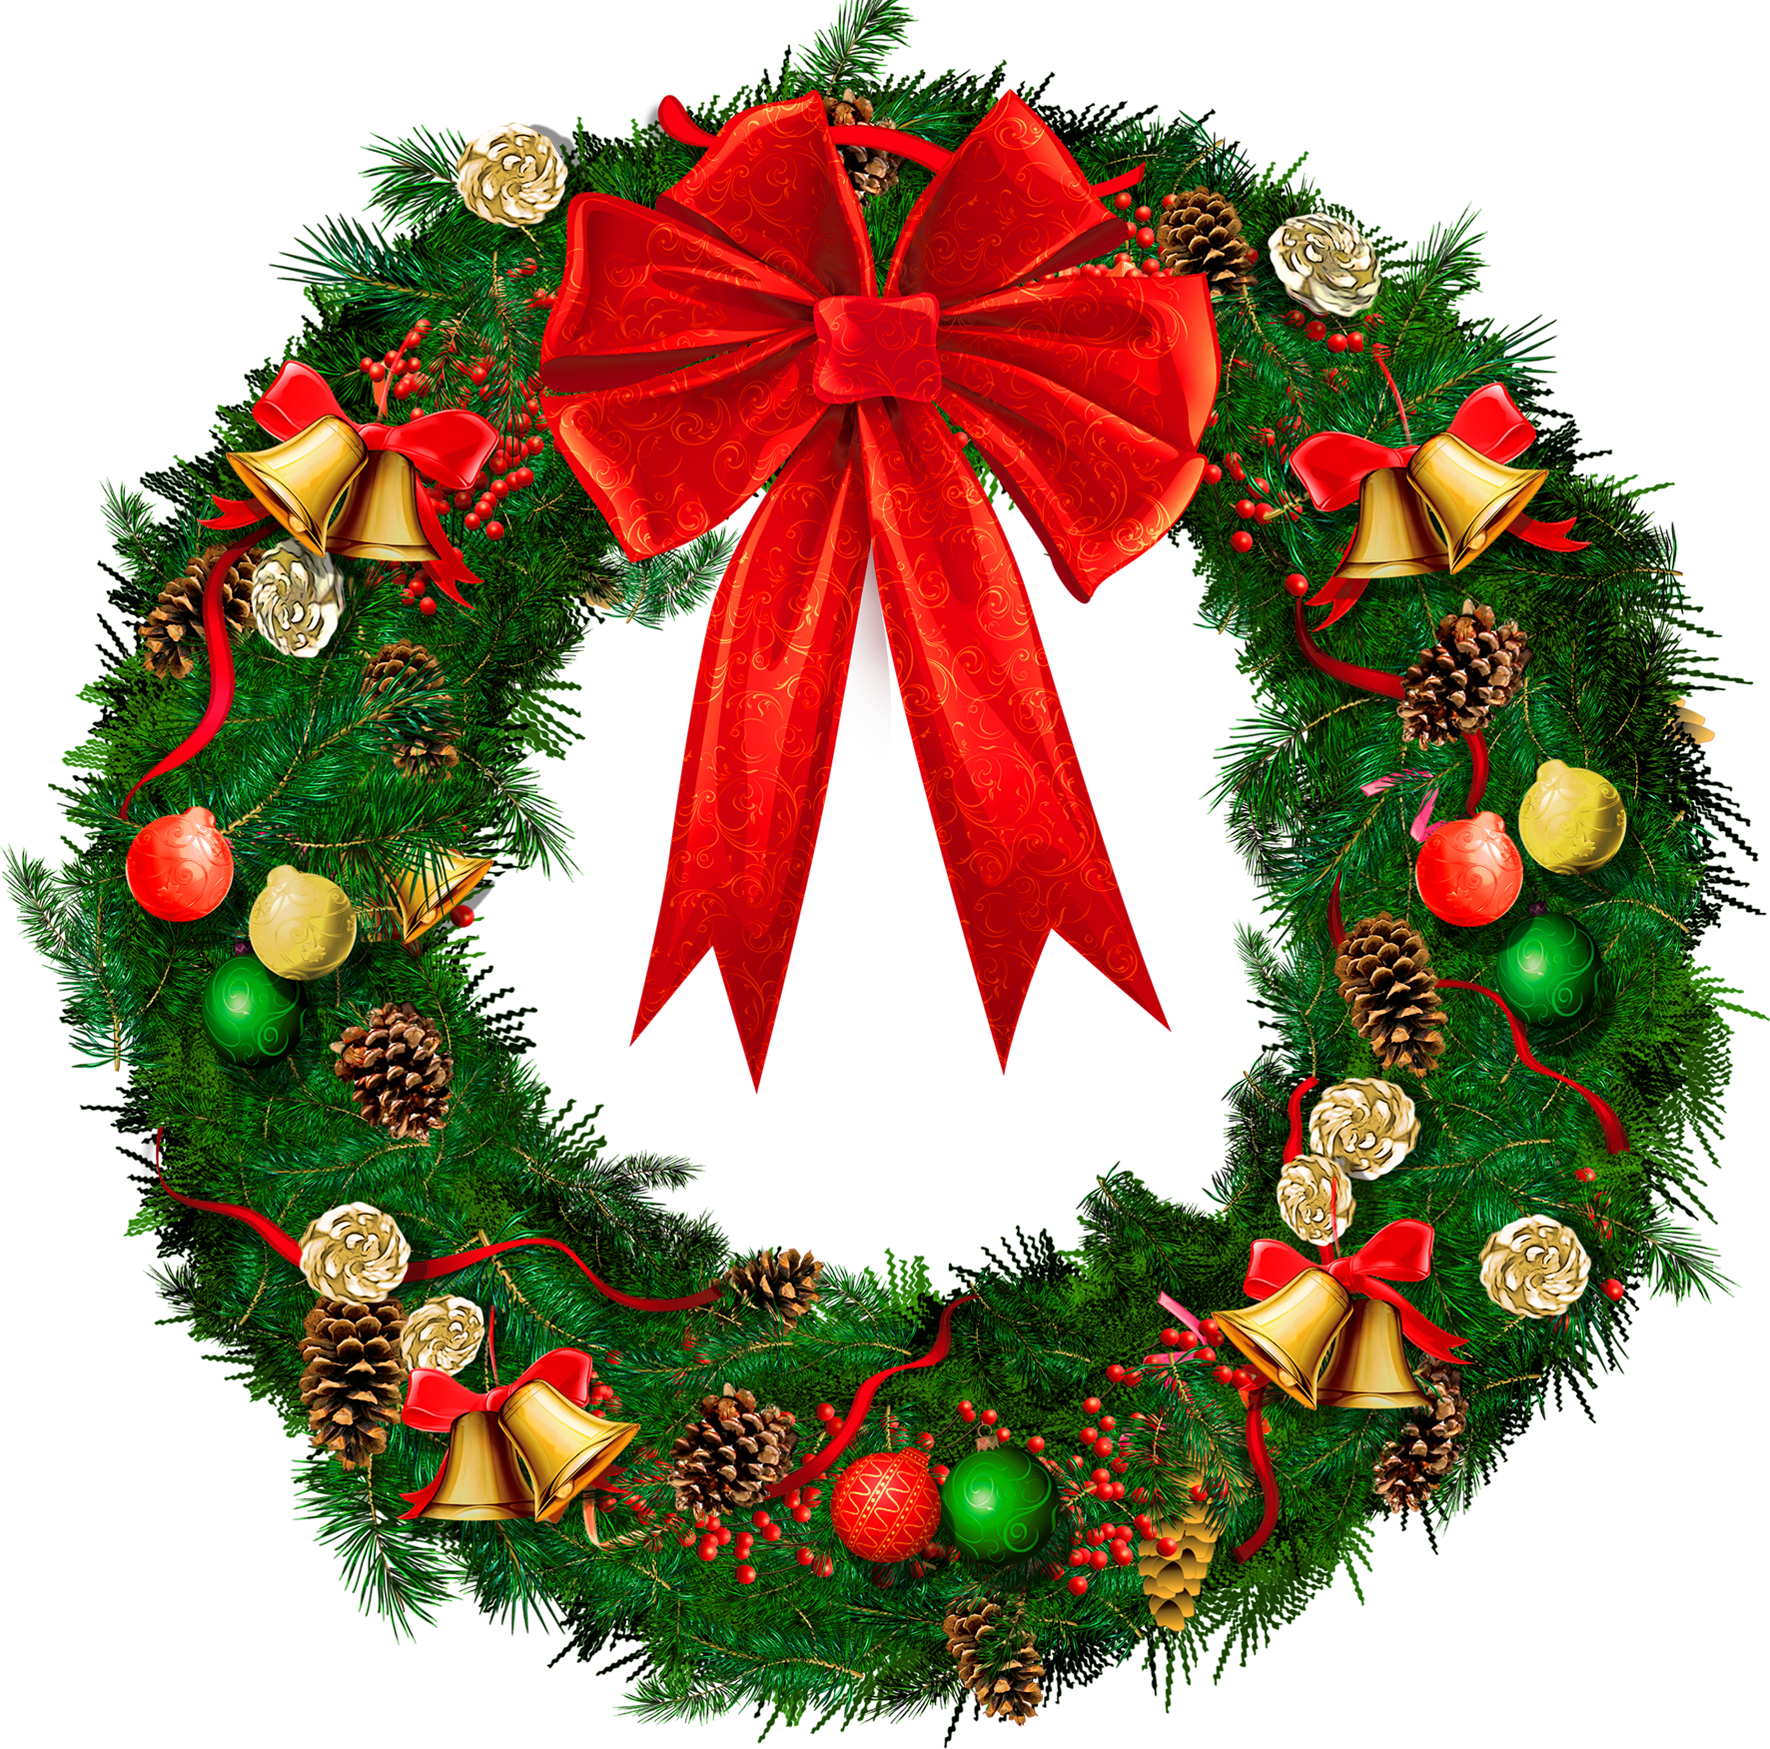 Free clipart christmas wreath clipart download Free Christmas Wreath Pictures, Download Free Clip Art, Free Clip ... clipart download